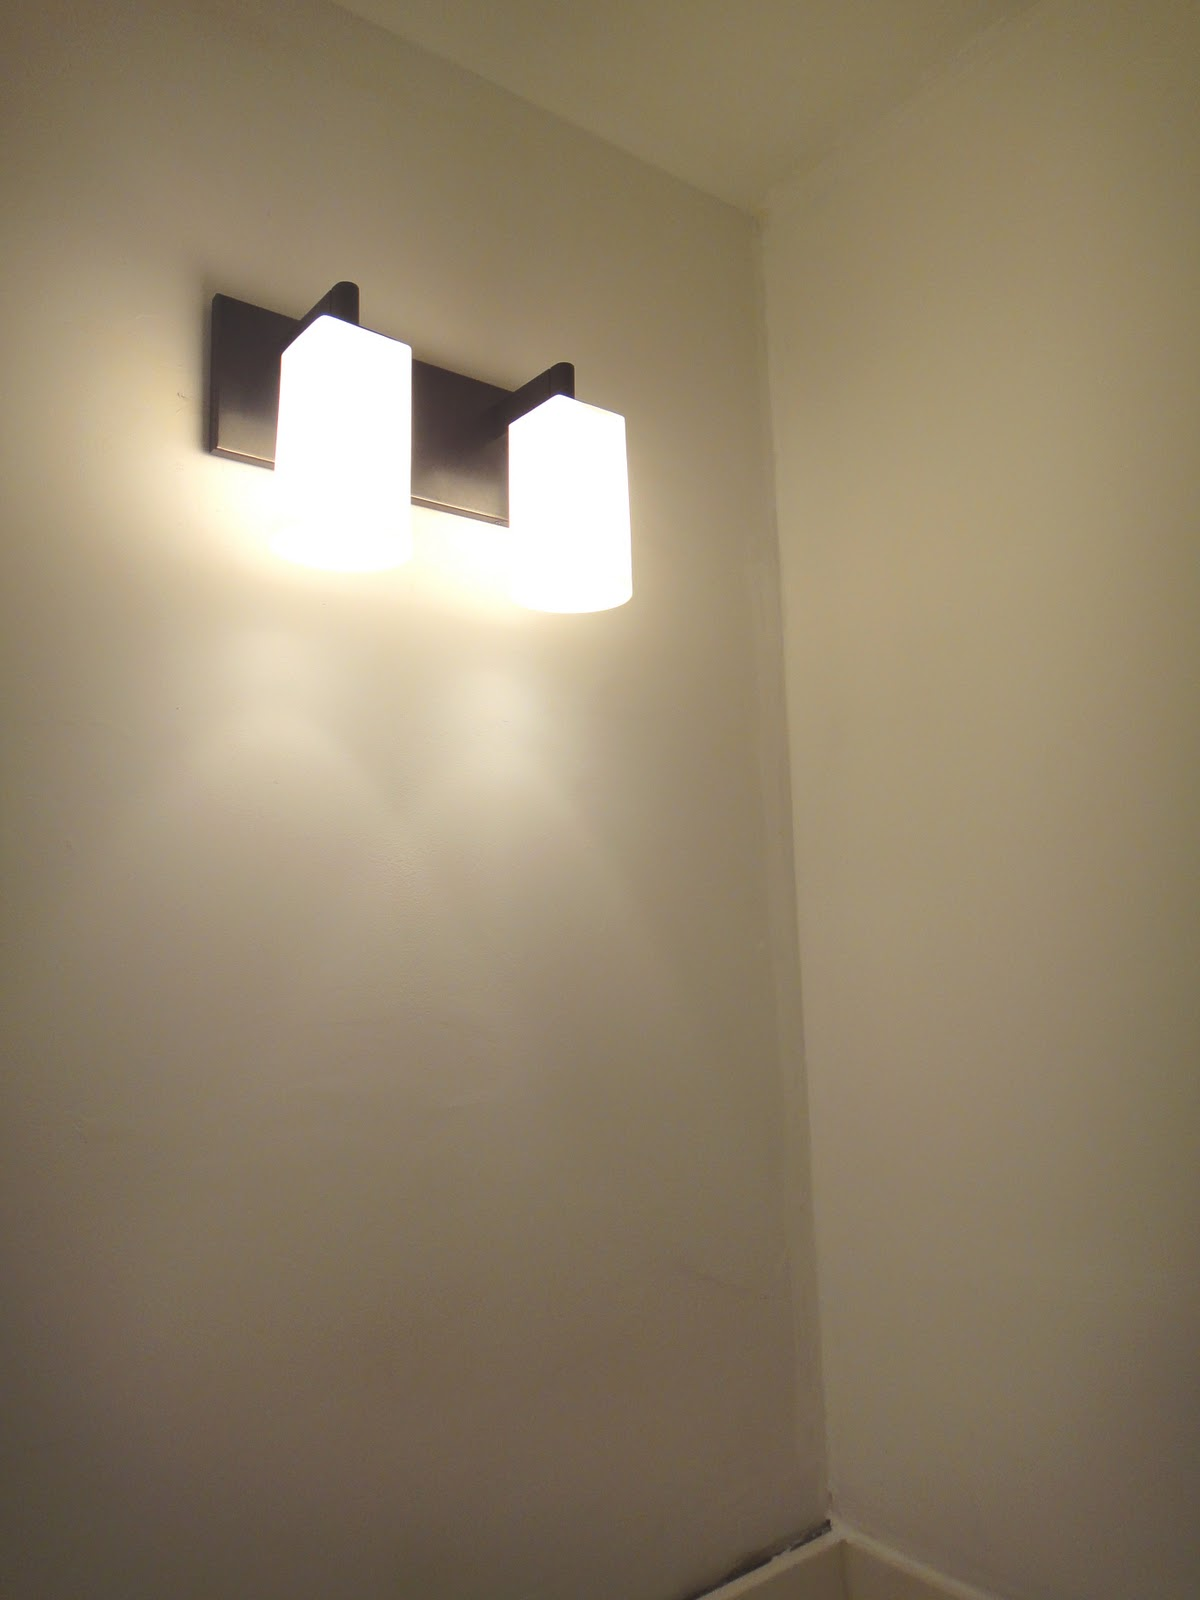 Vanity Light Fixture With Electrical Outlet : Bathroom Lighting With Electrical Outlet Simple Home Decoration